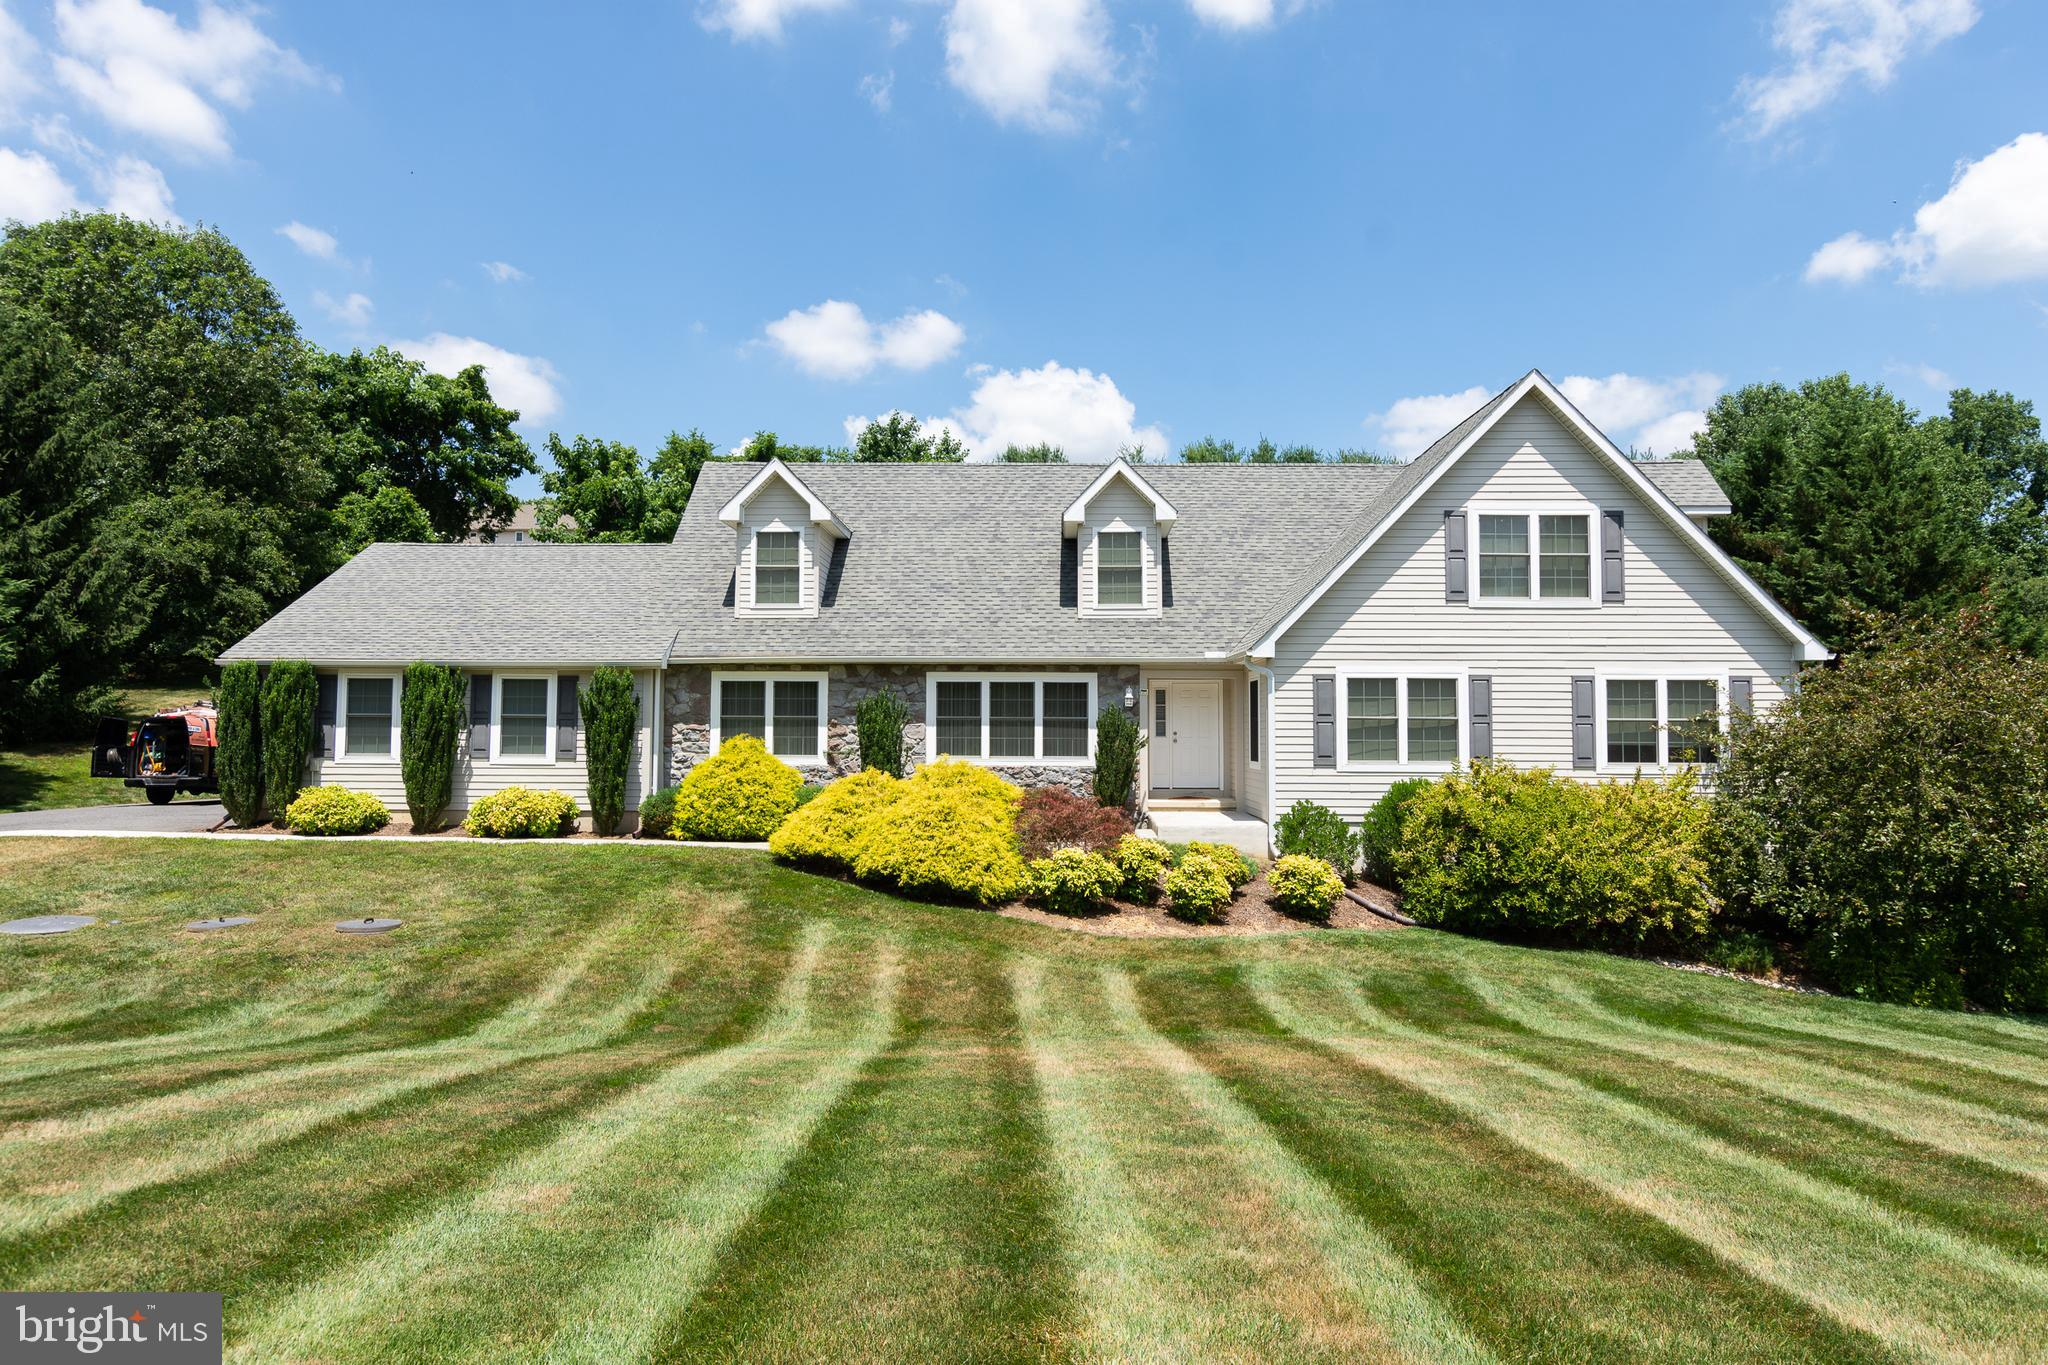 Built in 2010, this beautiful Cape Cod in Ramsey Ridge is awaiting its new owners. It features a fir